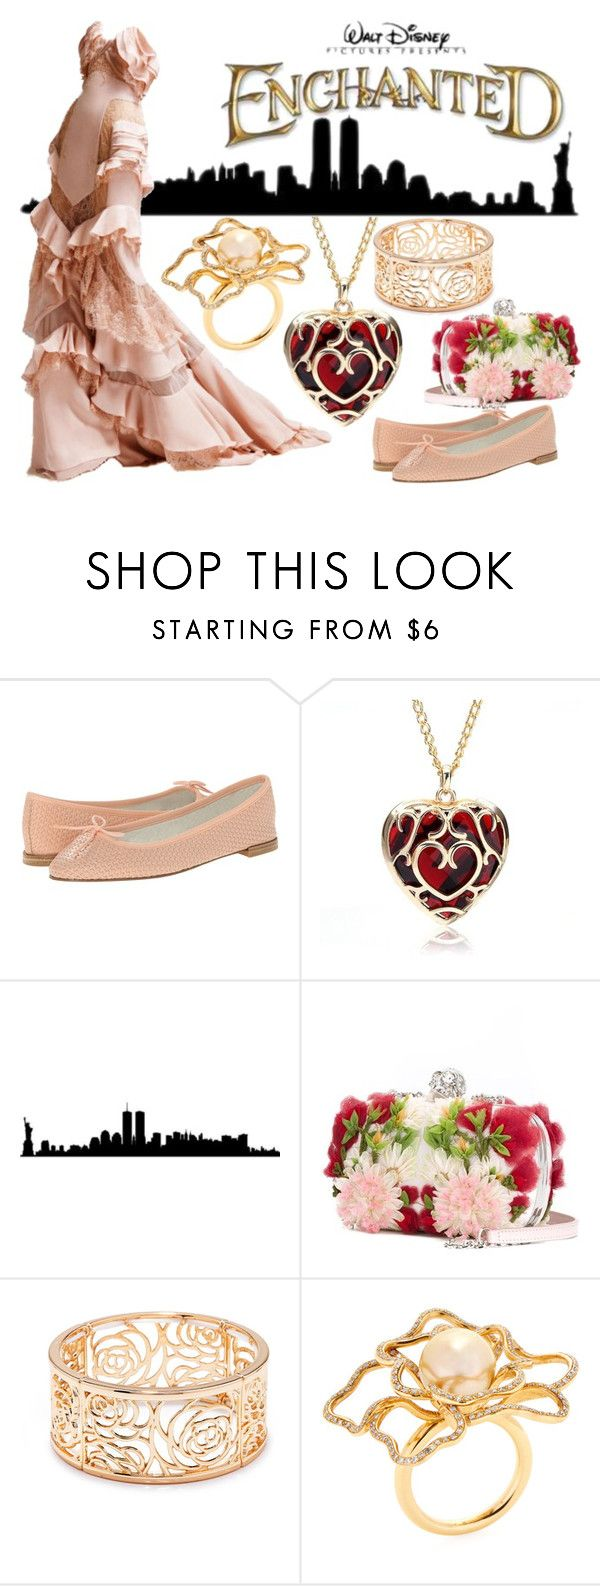 """""""Enchanted"""" by janastasiagg ❤ liked on Polyvore featuring Repetto, Disney, Alexander McQueen, Versace, Forever 21, Giovane, disney, disneybound and Disneyprincess"""